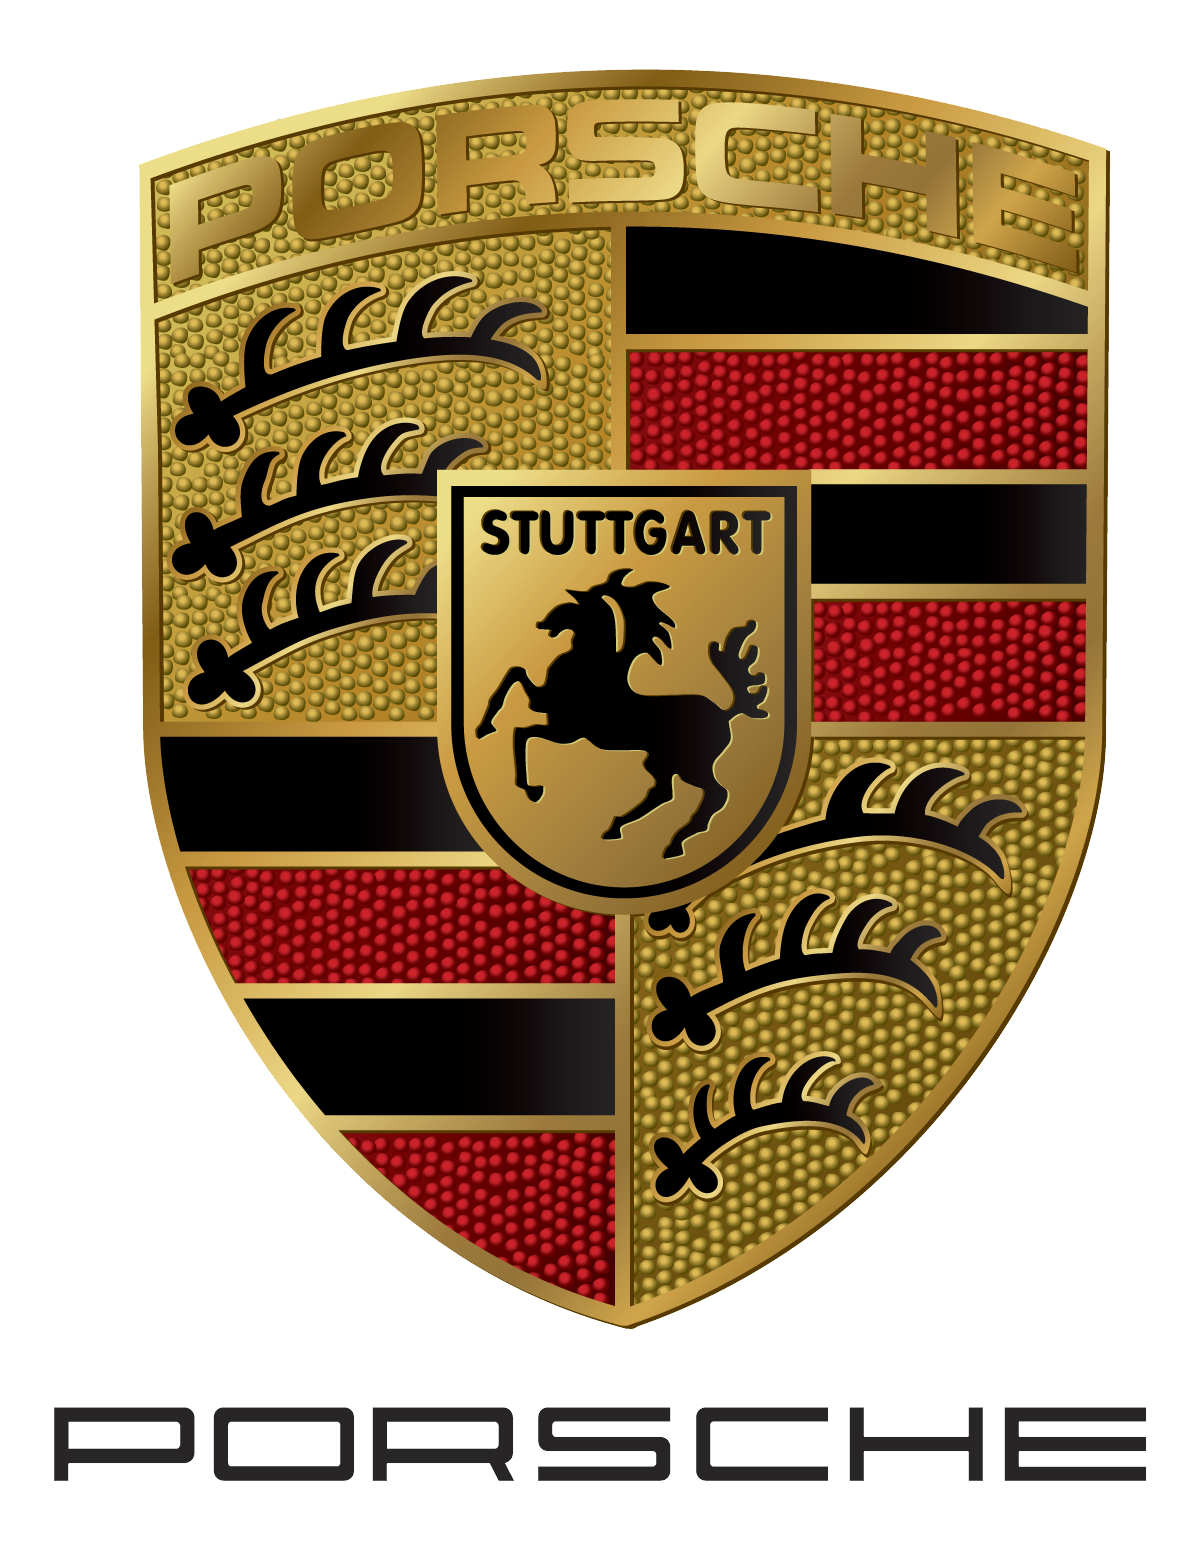 Crest png clear background. Porsche logo transparent mart